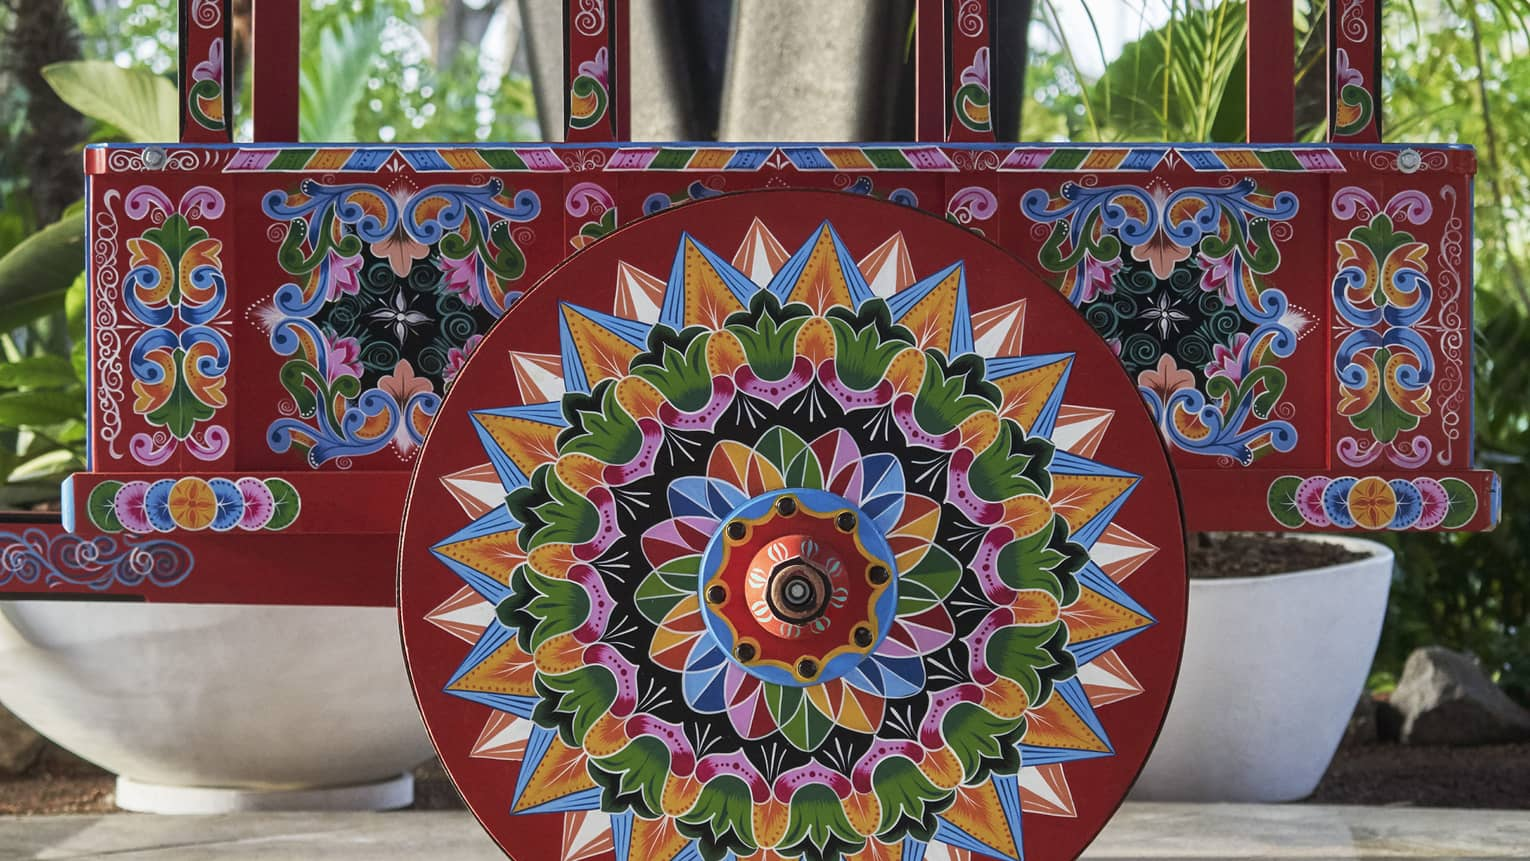 An intricately painted cart has floral designs in a rainbow of colors